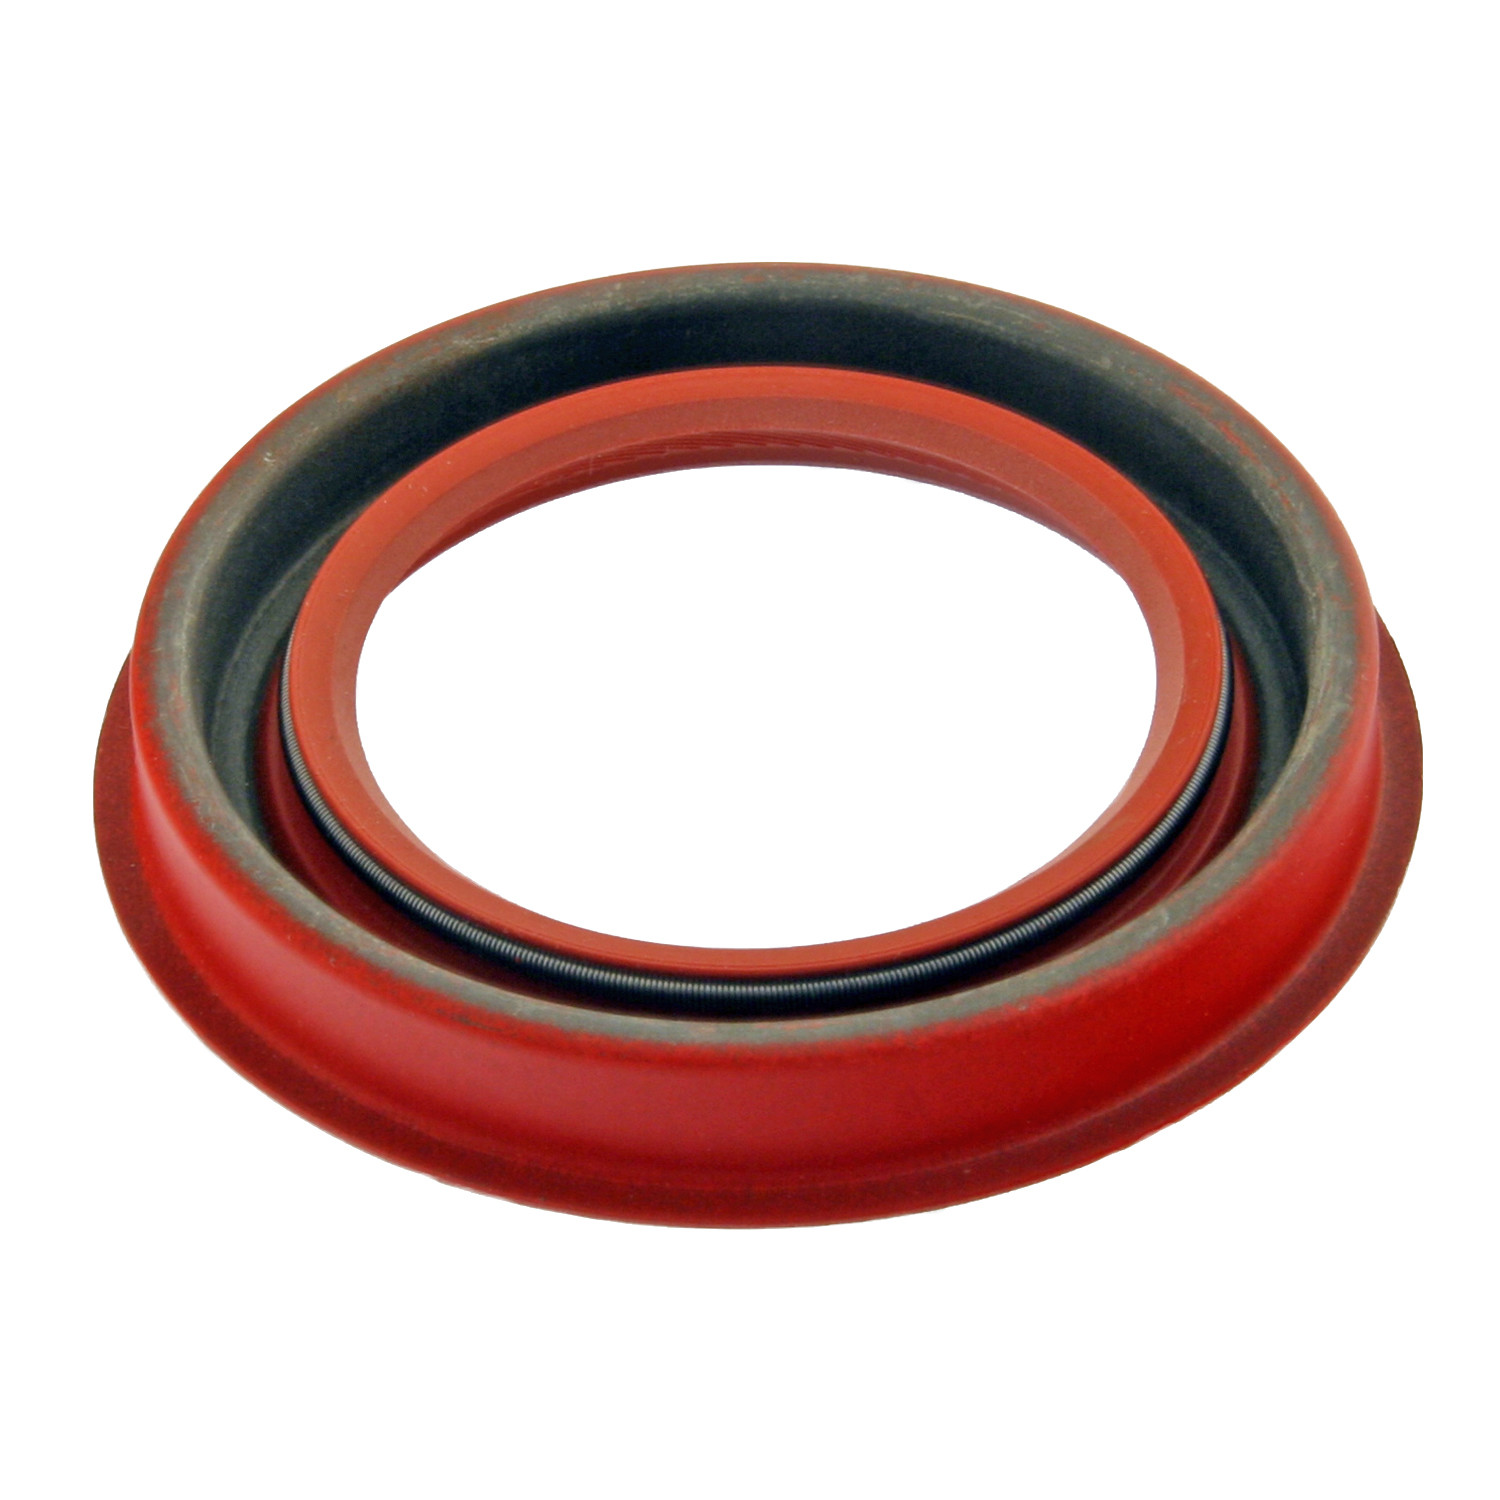 PARTS PLUS BEARINGS & SEALS - Automatic Transmission Torque Converter Seal - P94 P6712NA